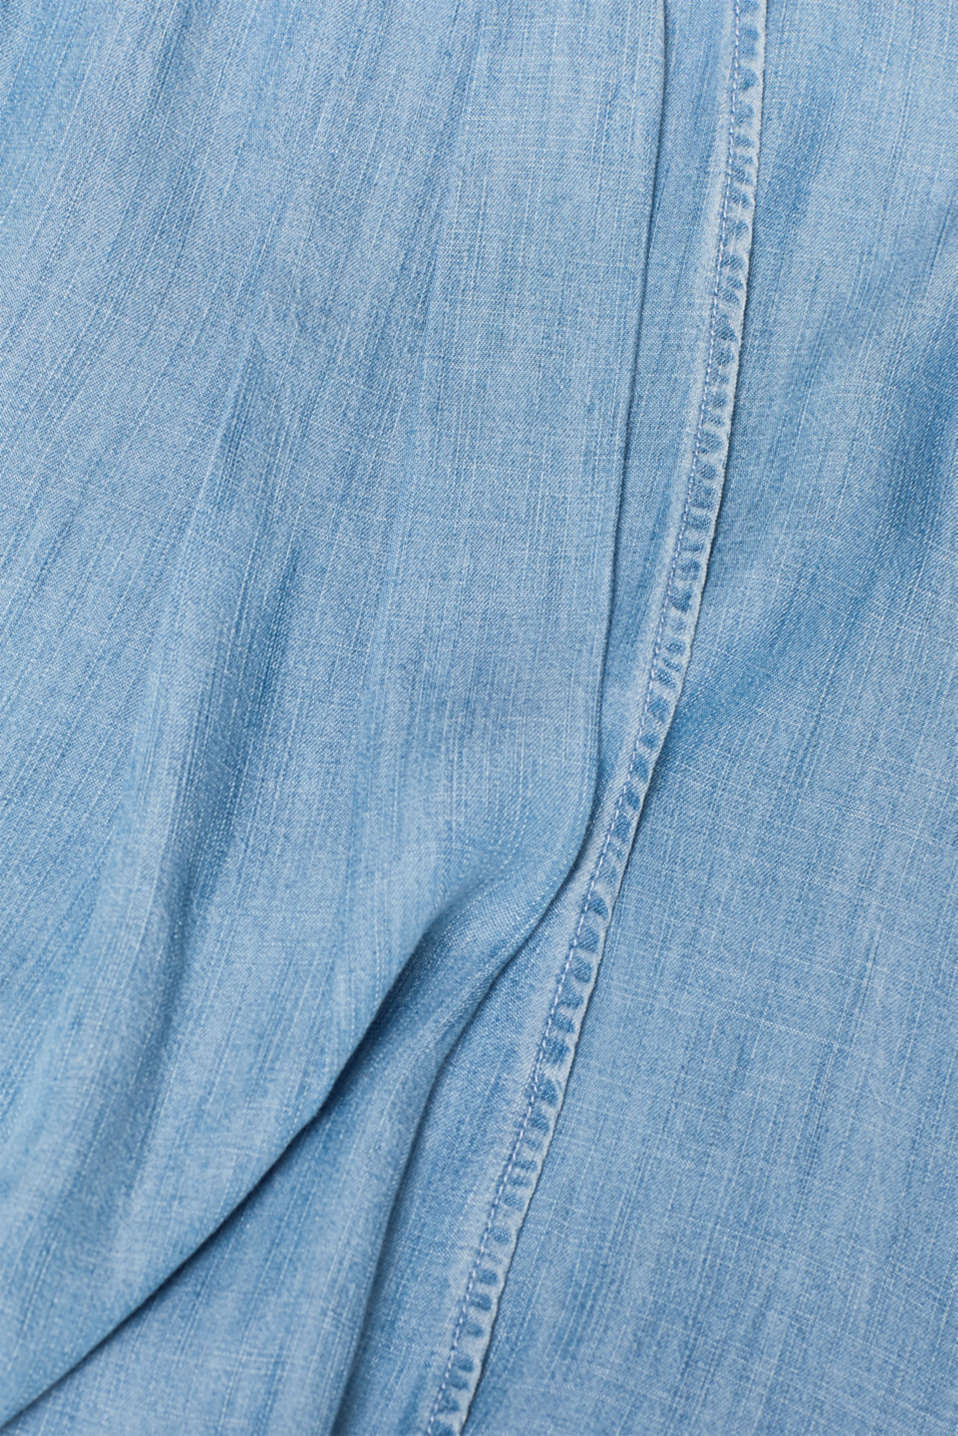 Denim-look layered dress in lyocell, BLUE LIGHT WASH, detail image number 4